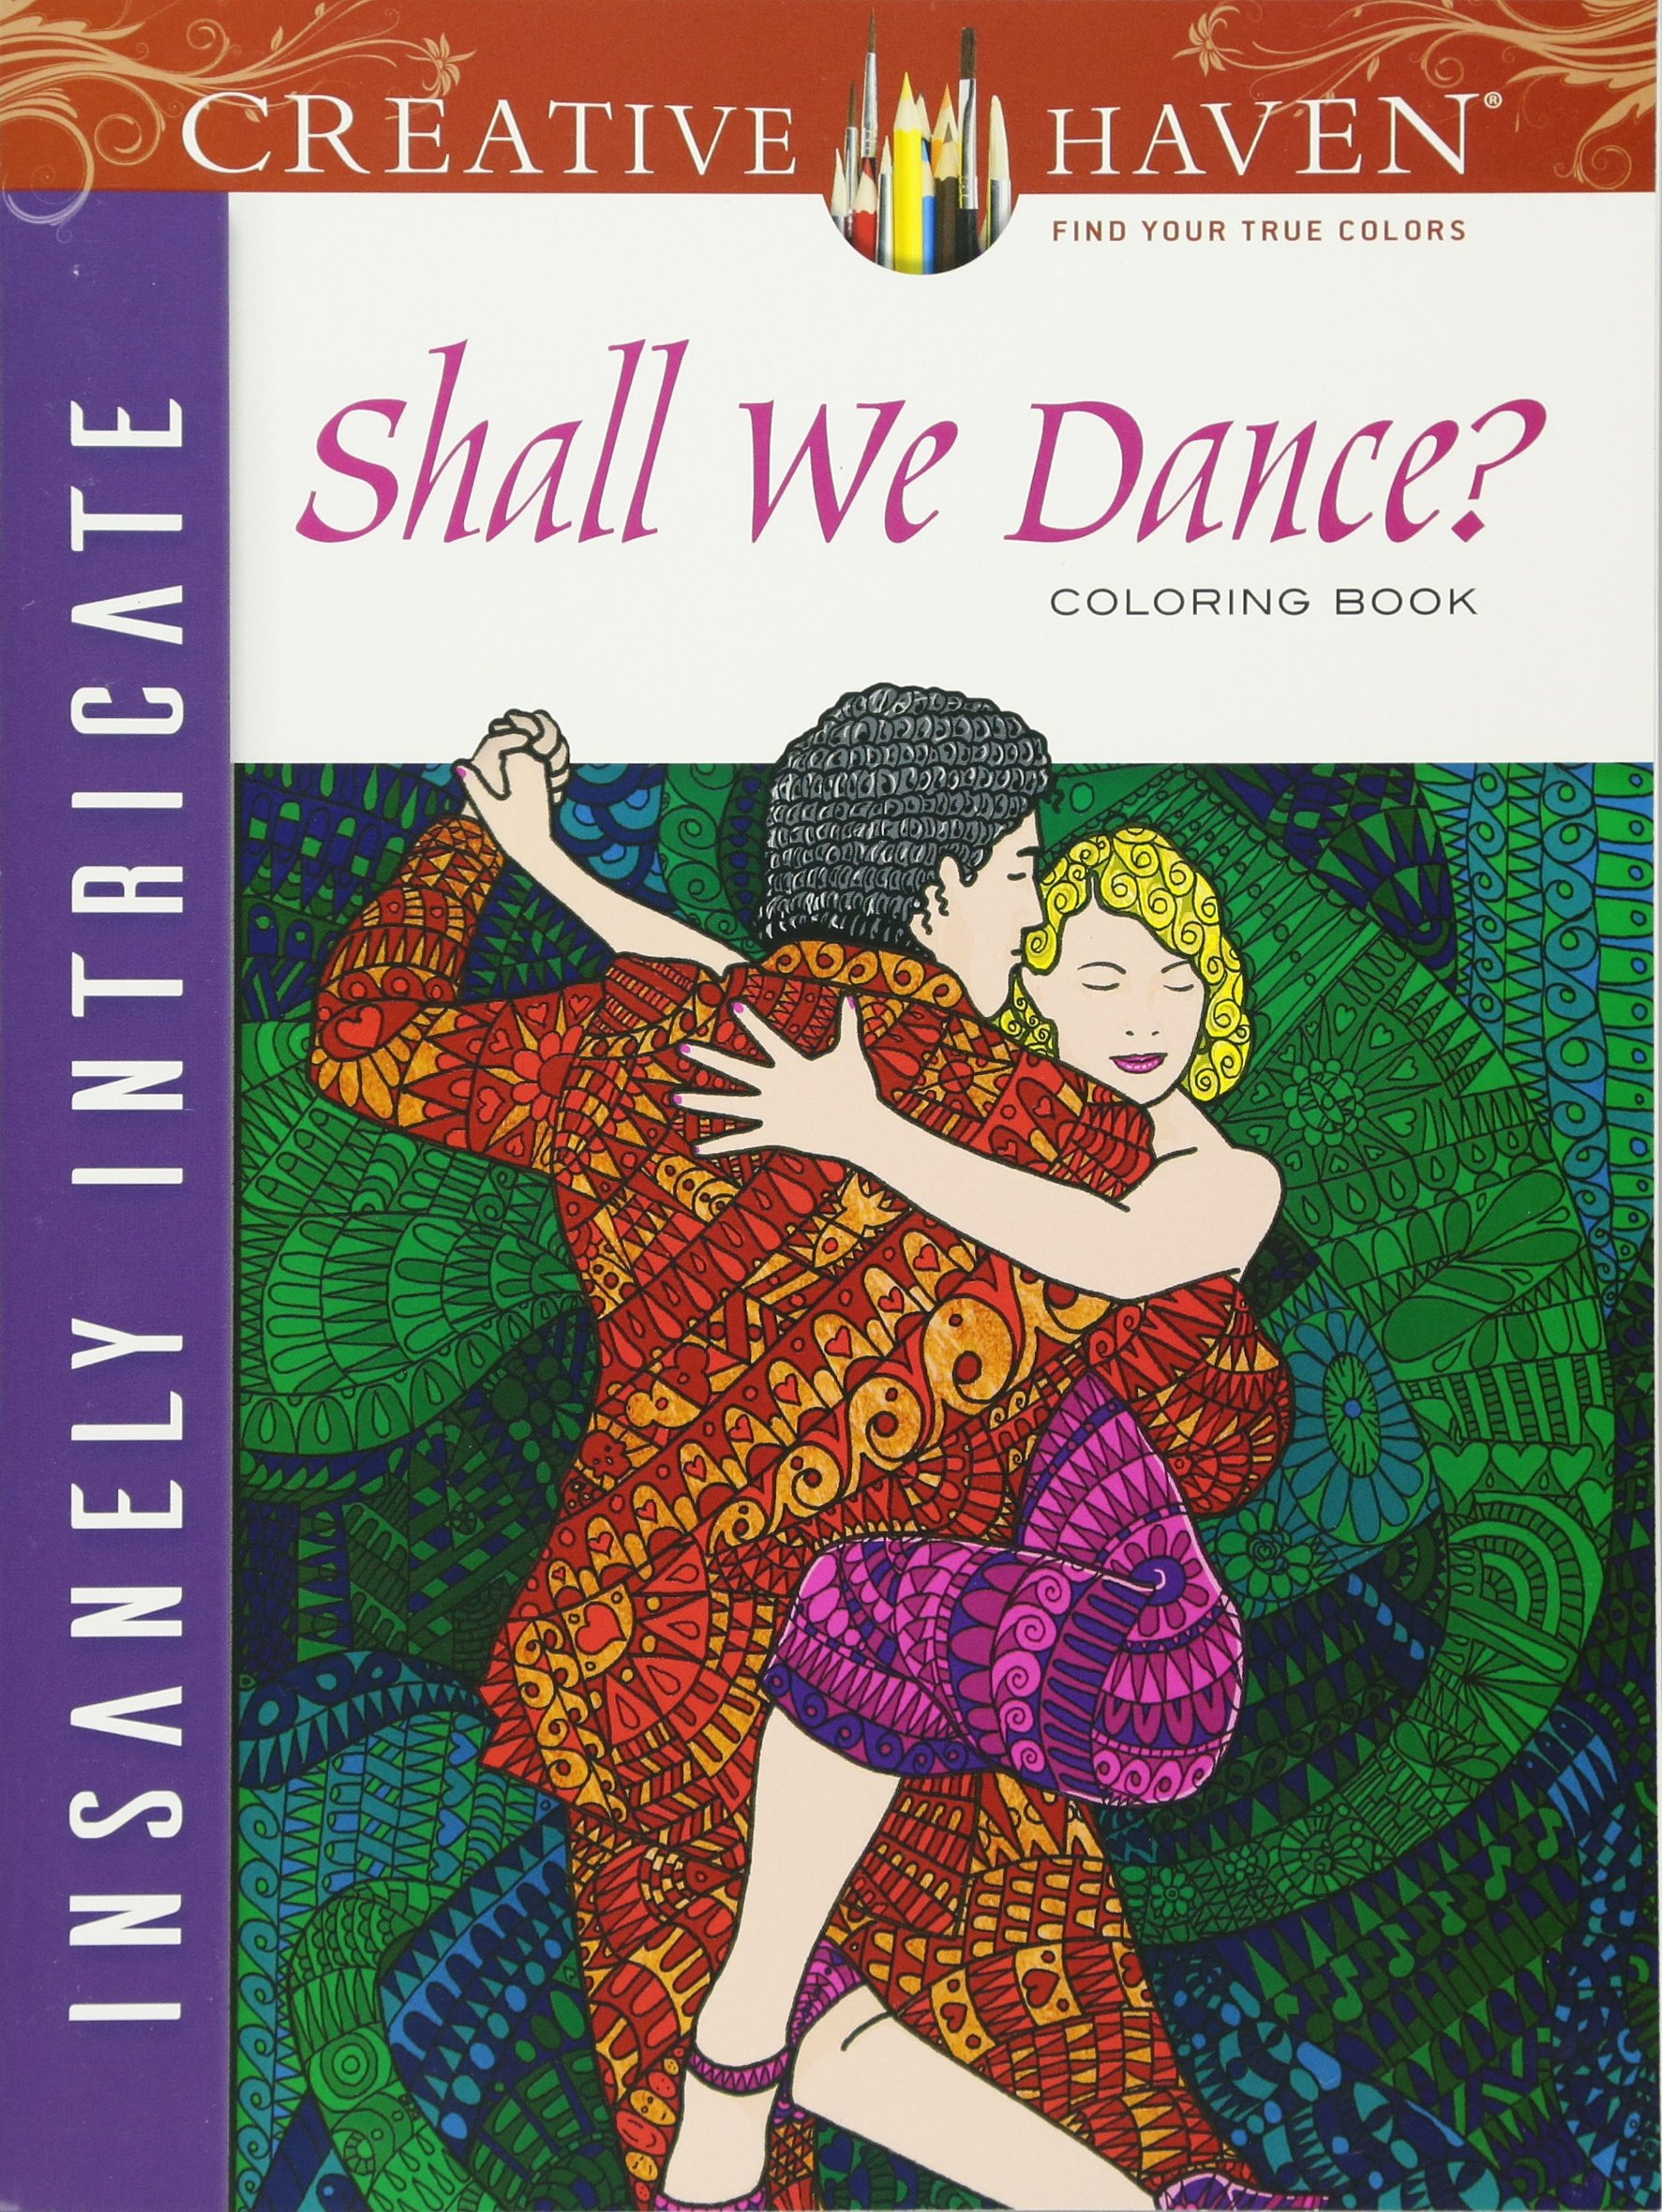 Creative Haven Insanely Intricate Shall We Dance? Coloring Book ...